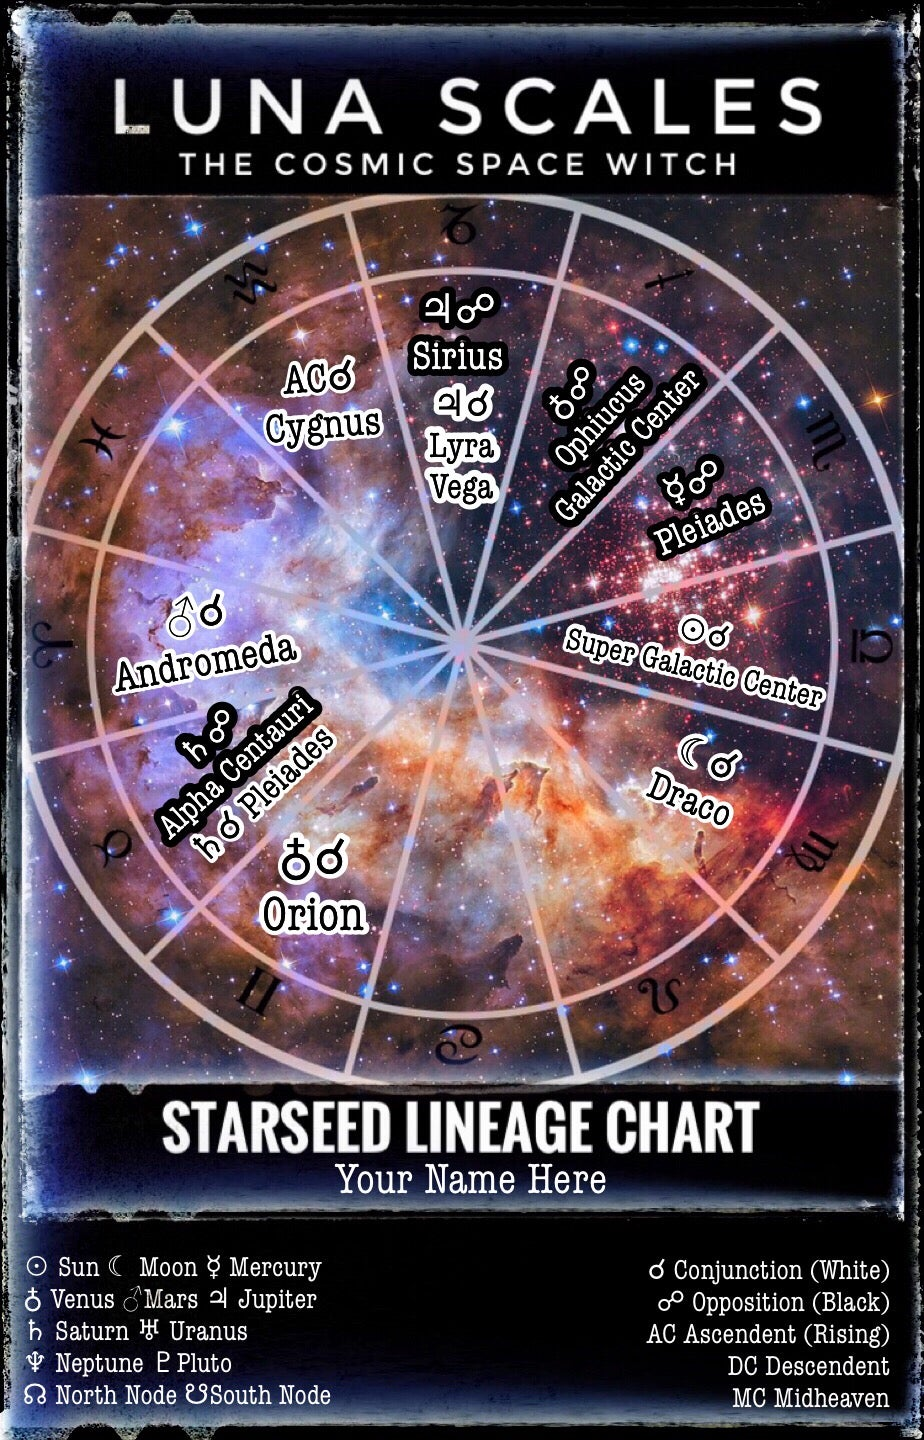 Starseed Lineage Chart